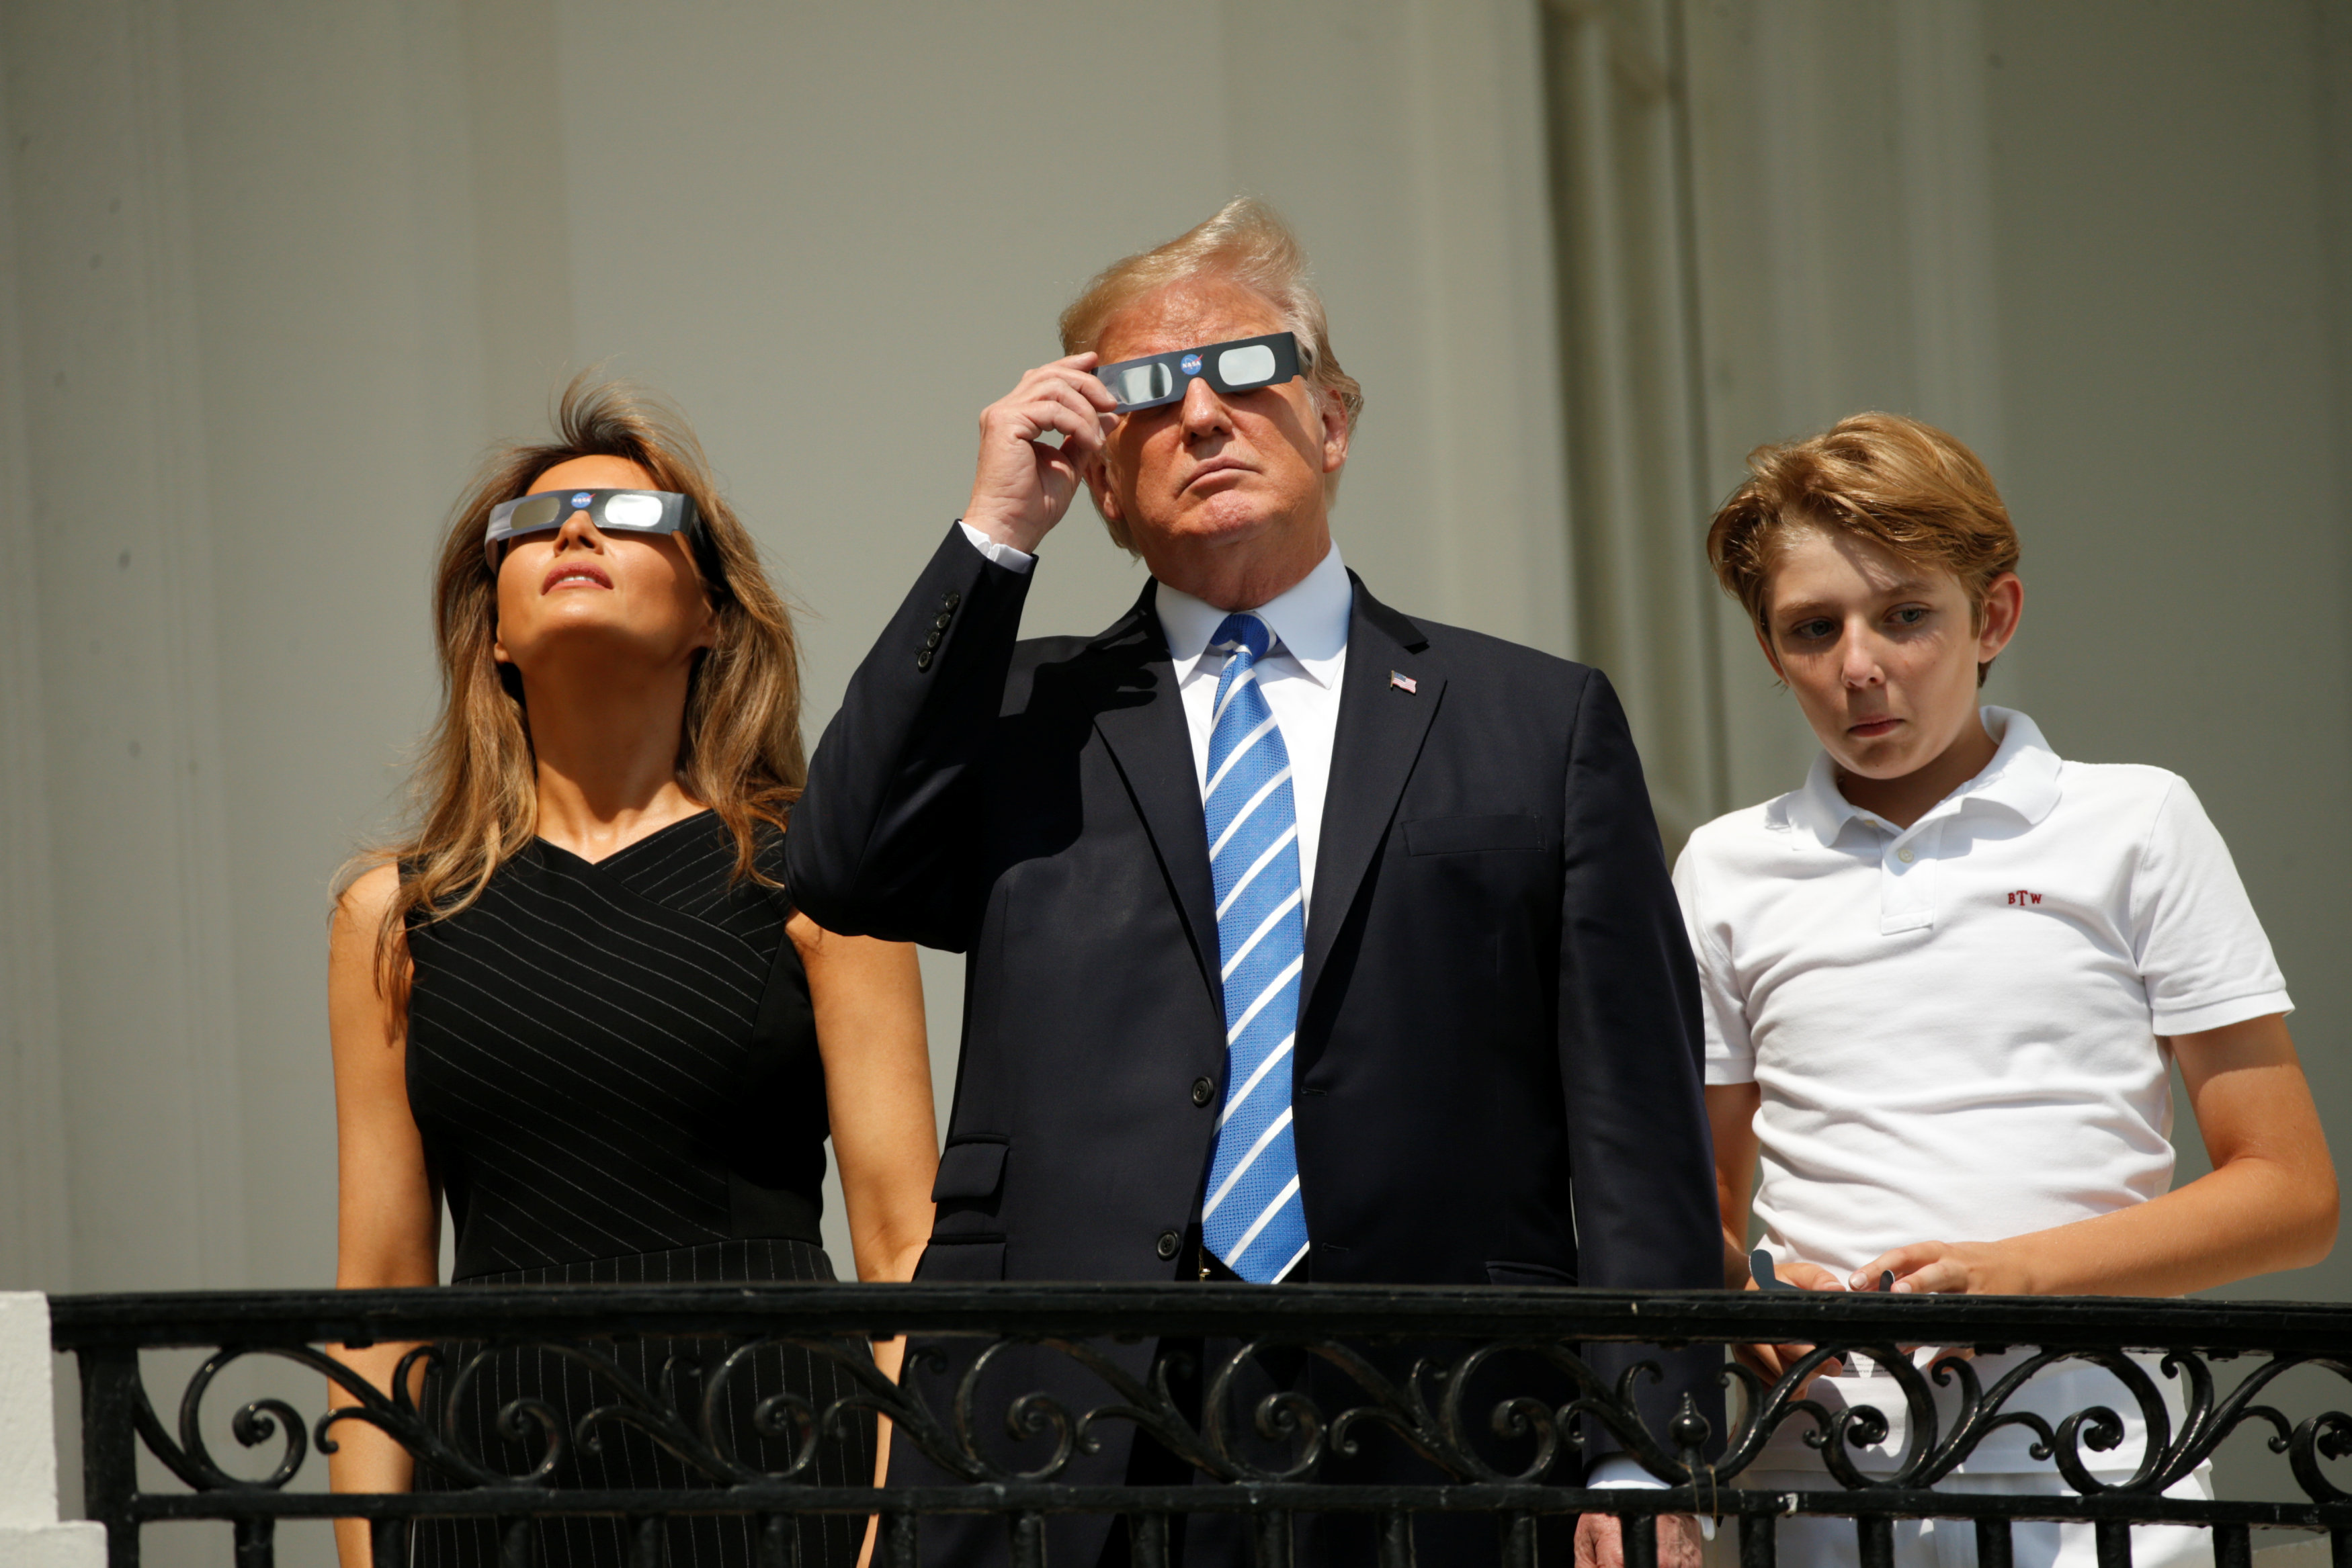 U.S. President Donald Trump watches the solar eclipse with first Lady Melania Trump and son Barron from the Truman Balcony at the White House in Washington, U.S., August 21, 2017. REUTERS/Kevin Lamarque